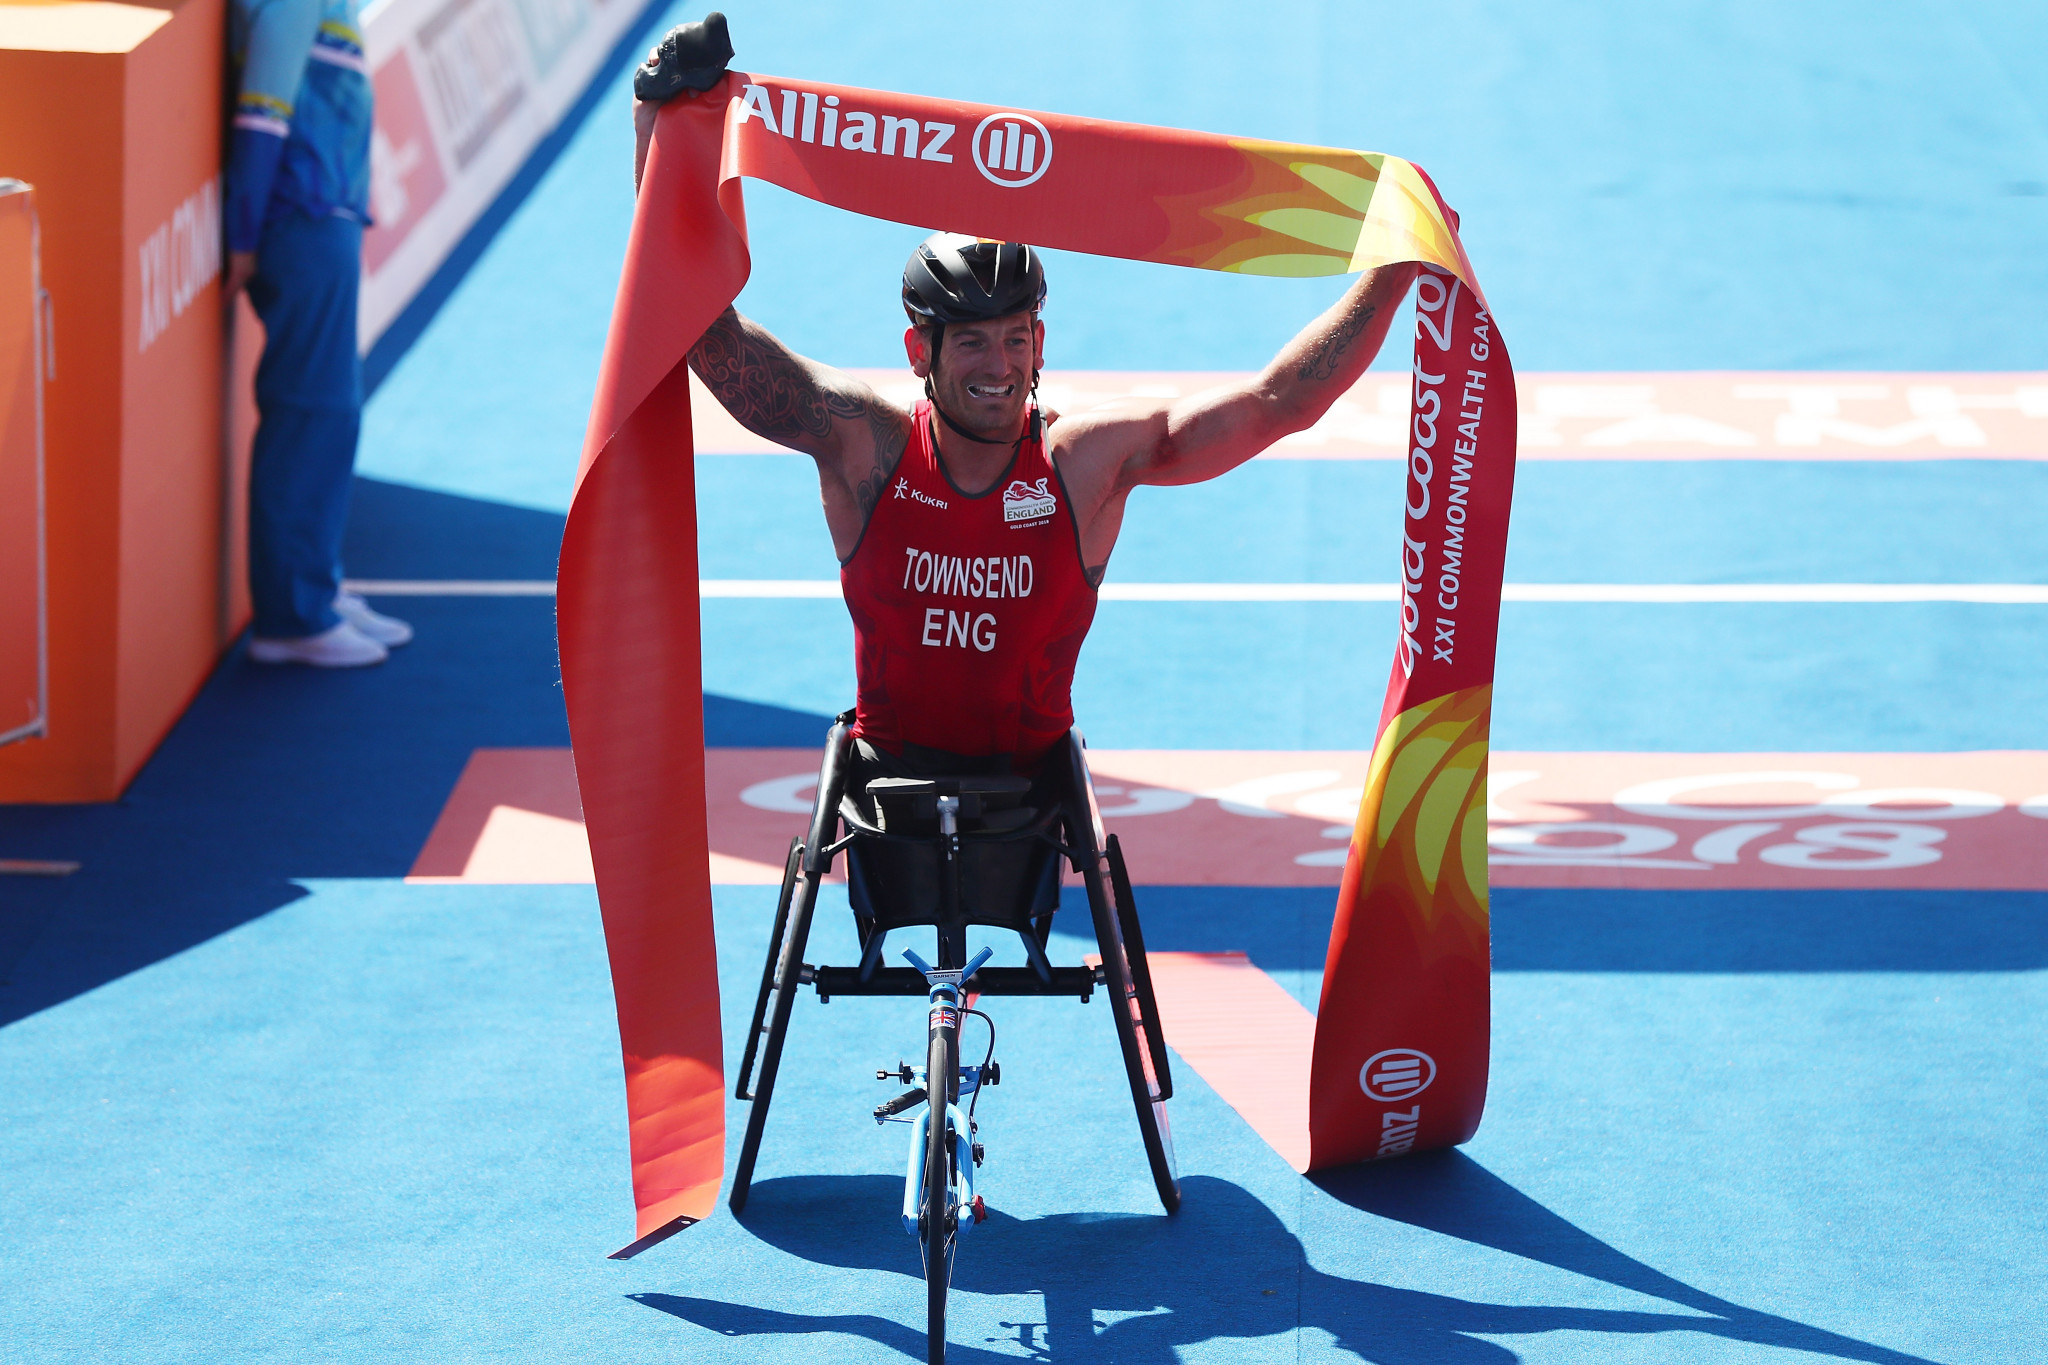 Townsend and Jones avoid crashes to claim English Paratriathlon double at Gold Coast 2018